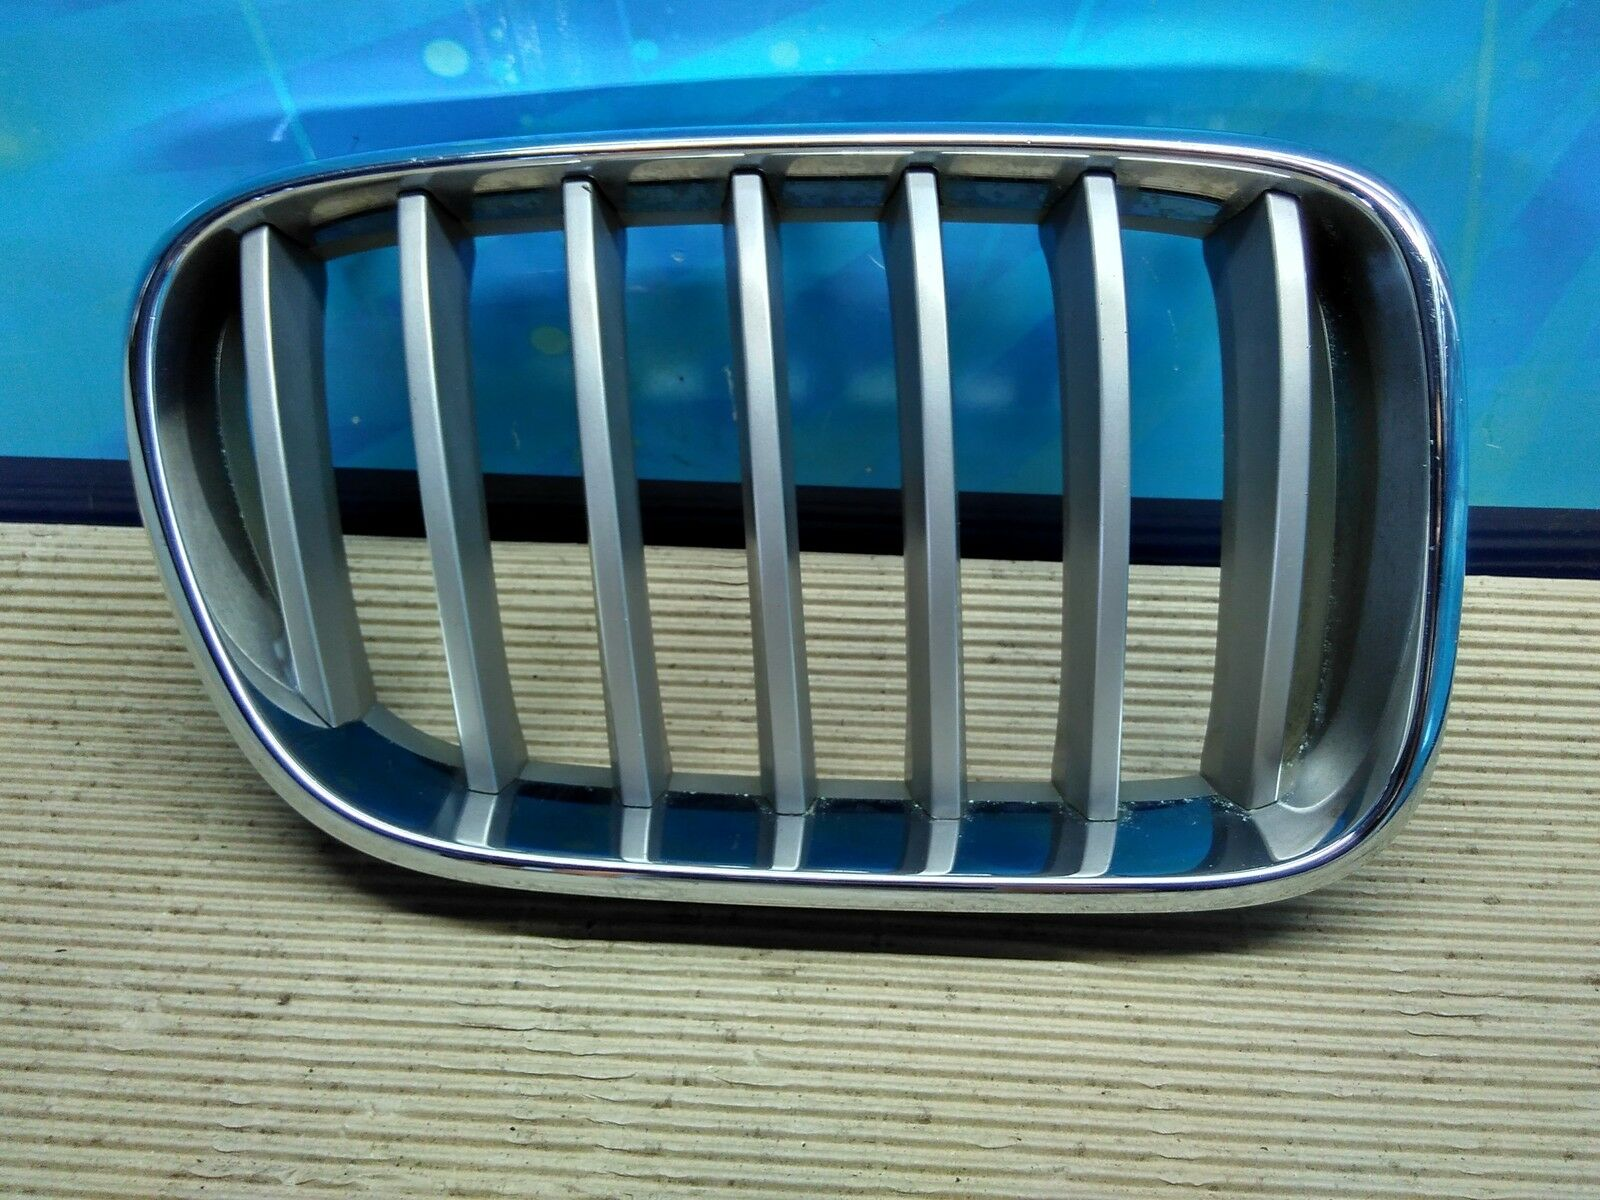 photo dl automotive cs grill free grille download bmw stock pexels chrome car srgb